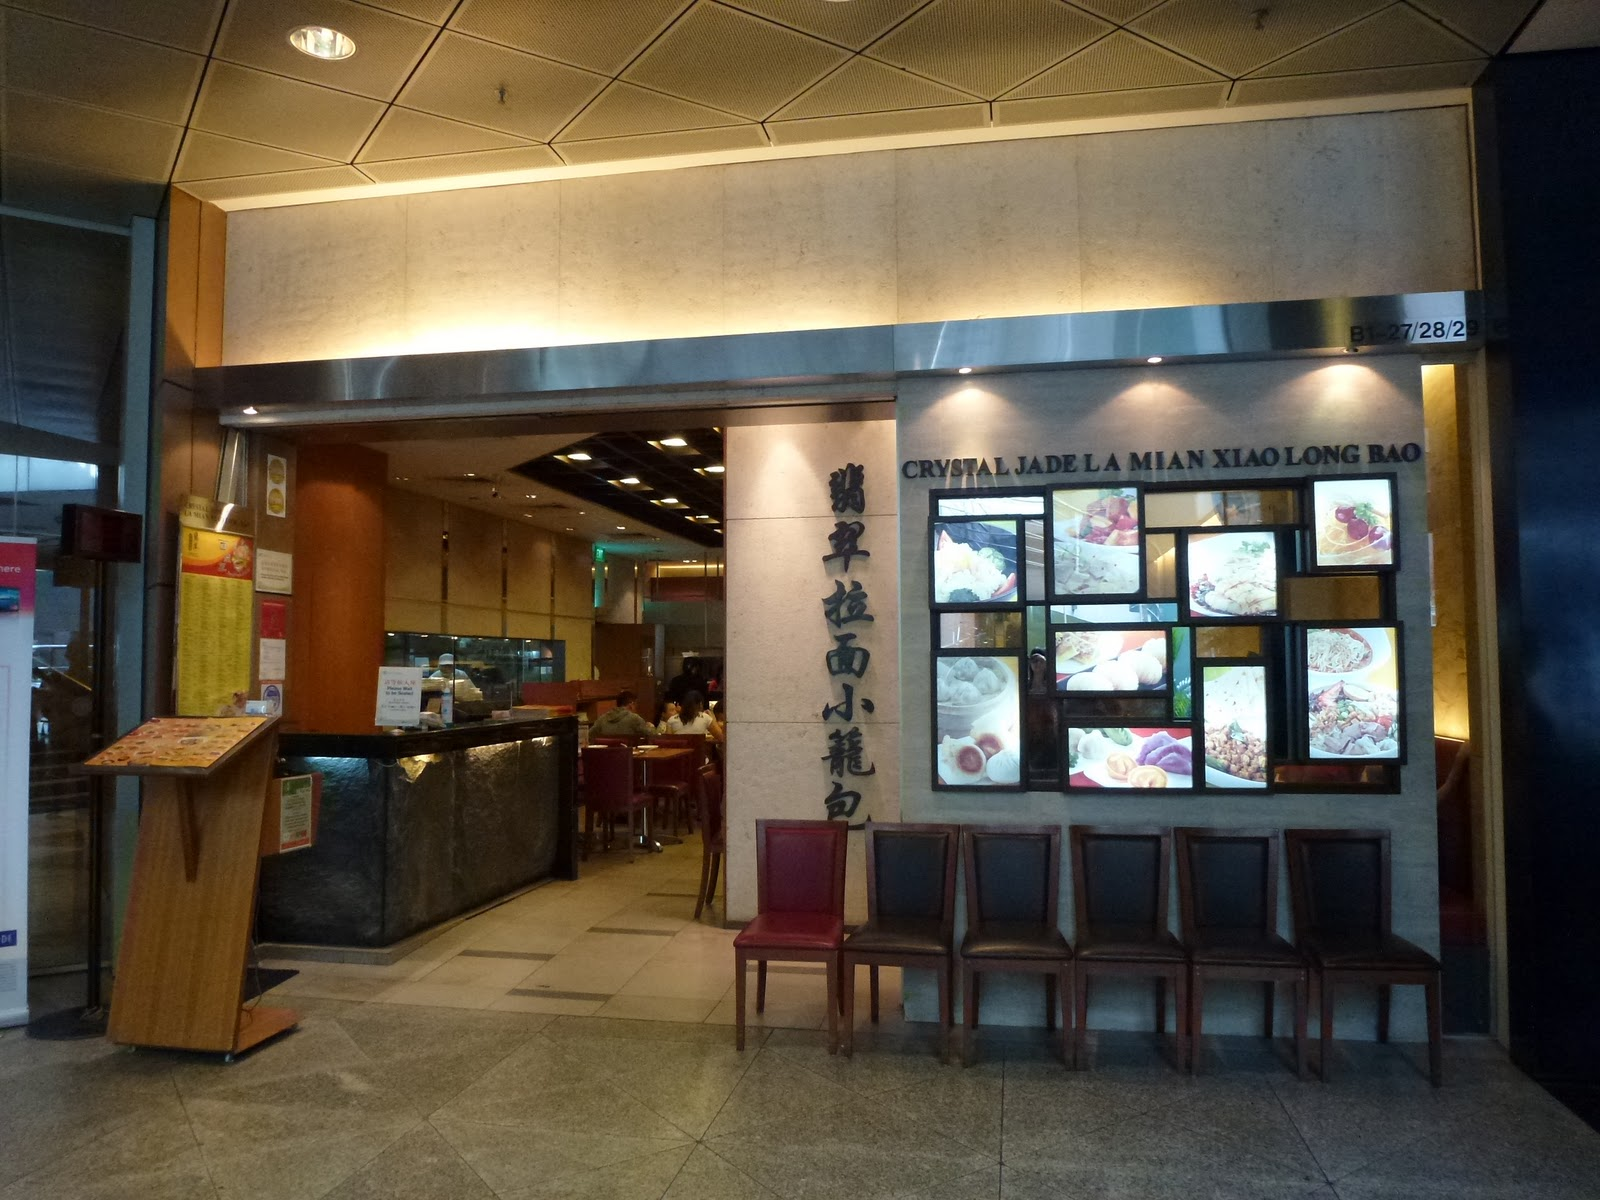 Delicious Food in Singapore and the UK! 新加坡的美食!: Restaurant Review食評 :- Crystal Jade La Mian ...